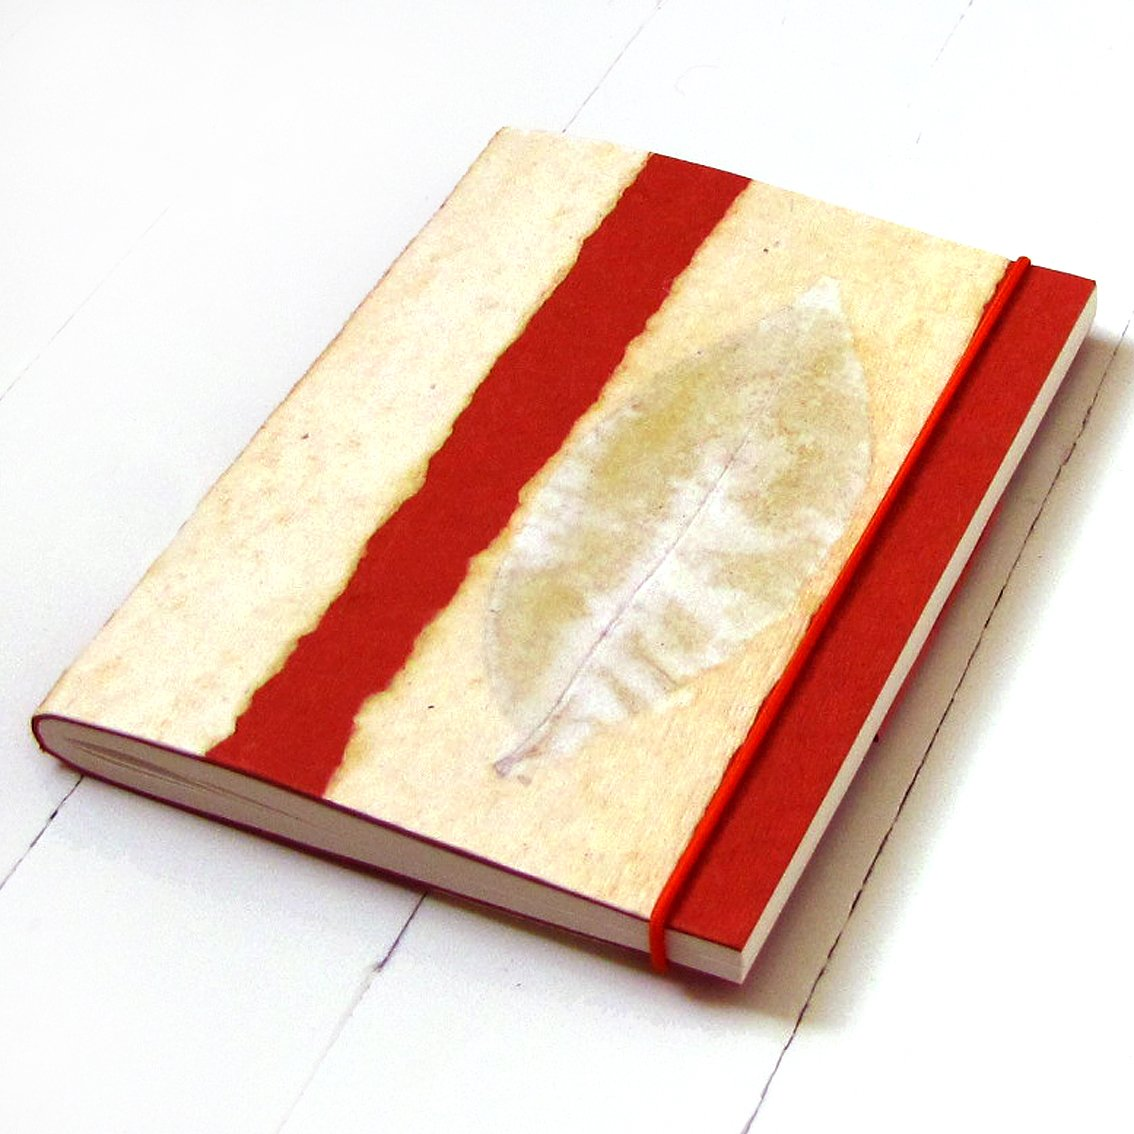 Writing journal blank guest book handmade paper crafts striped orange 5x7 88pp Xmas gifts